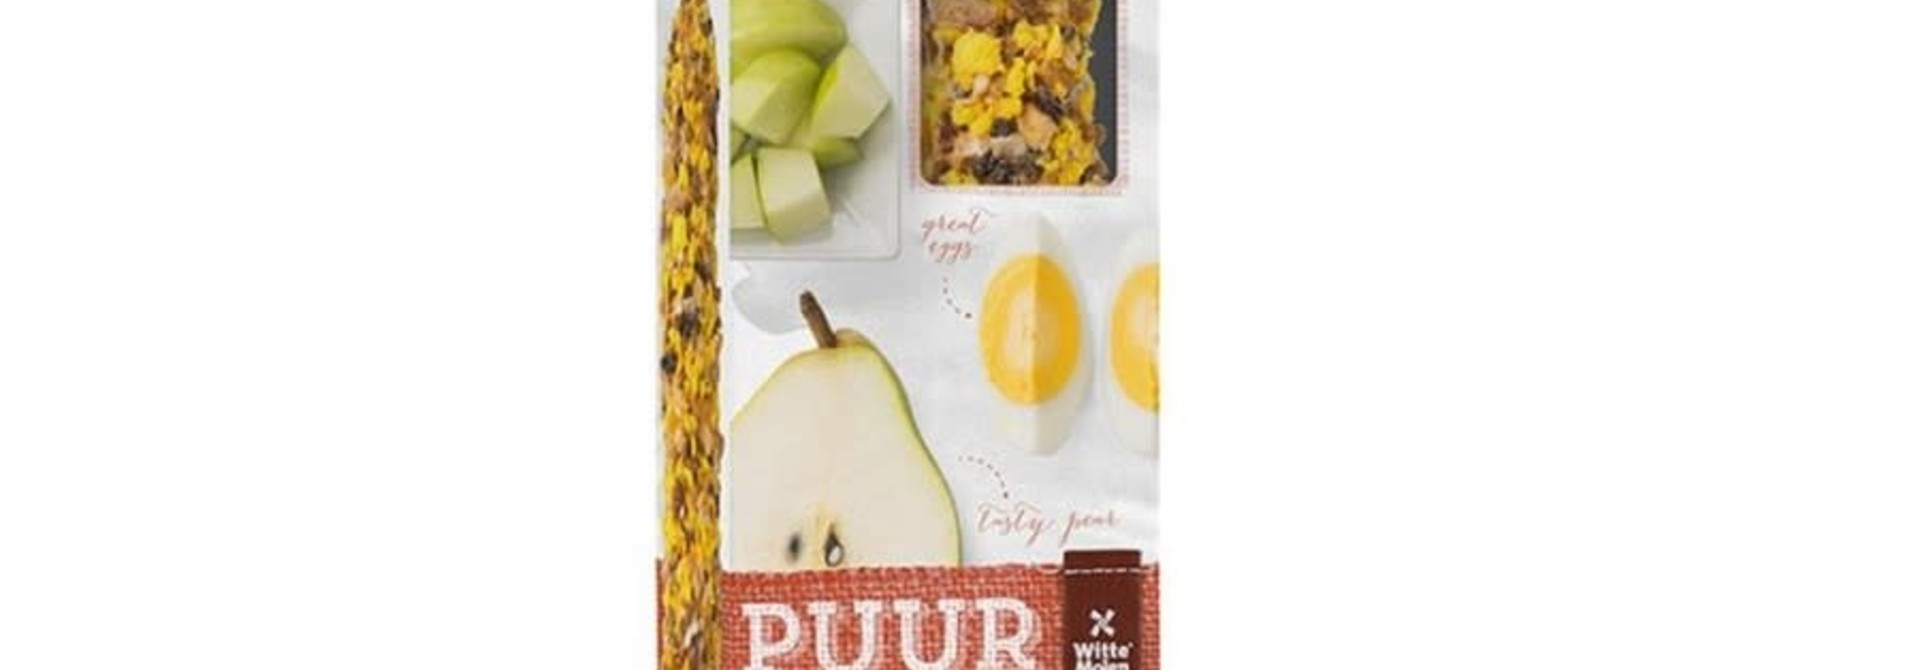 Canary - Apple/Pear Treat Sticks